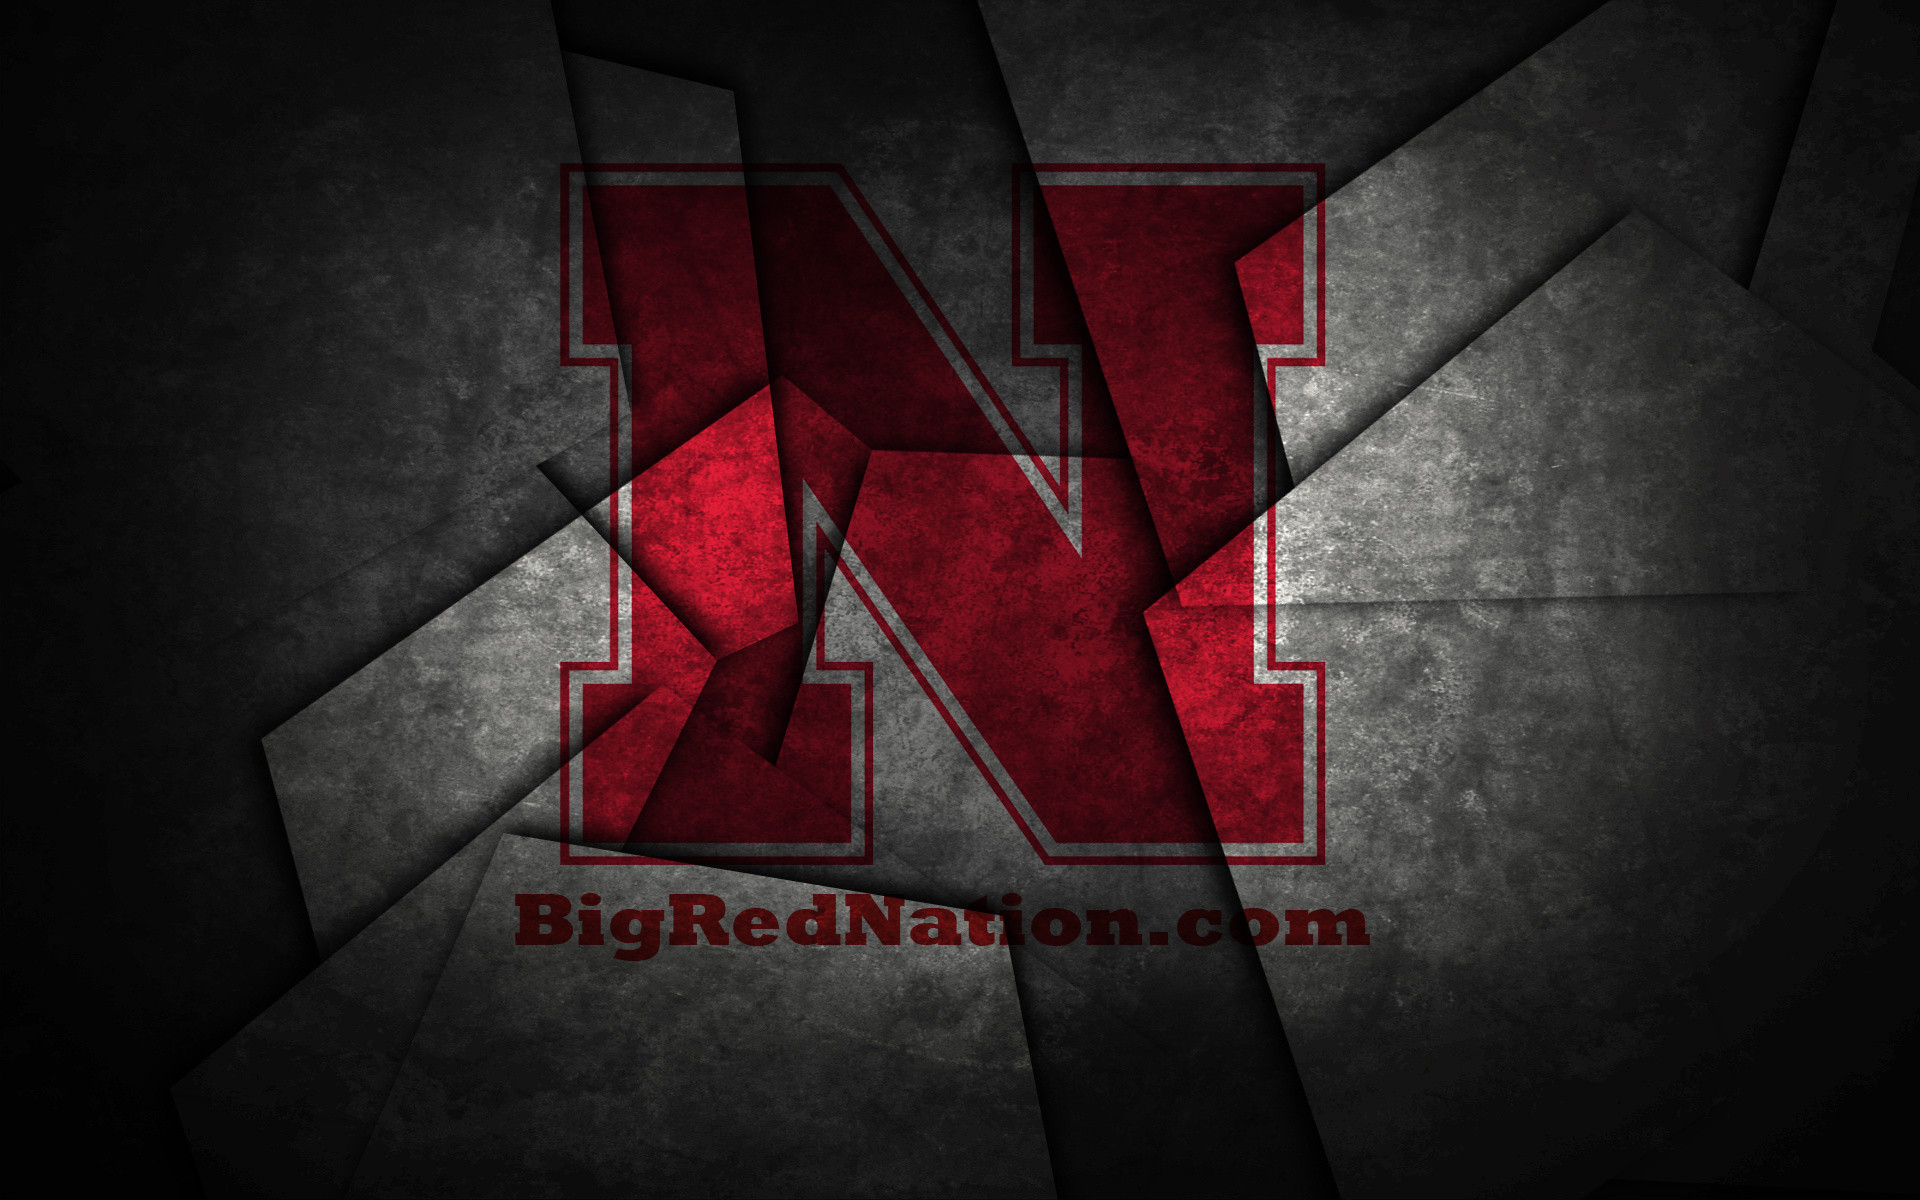 BigRedNation.com HD Android Home Screen Wallpaper   Big Red Nation